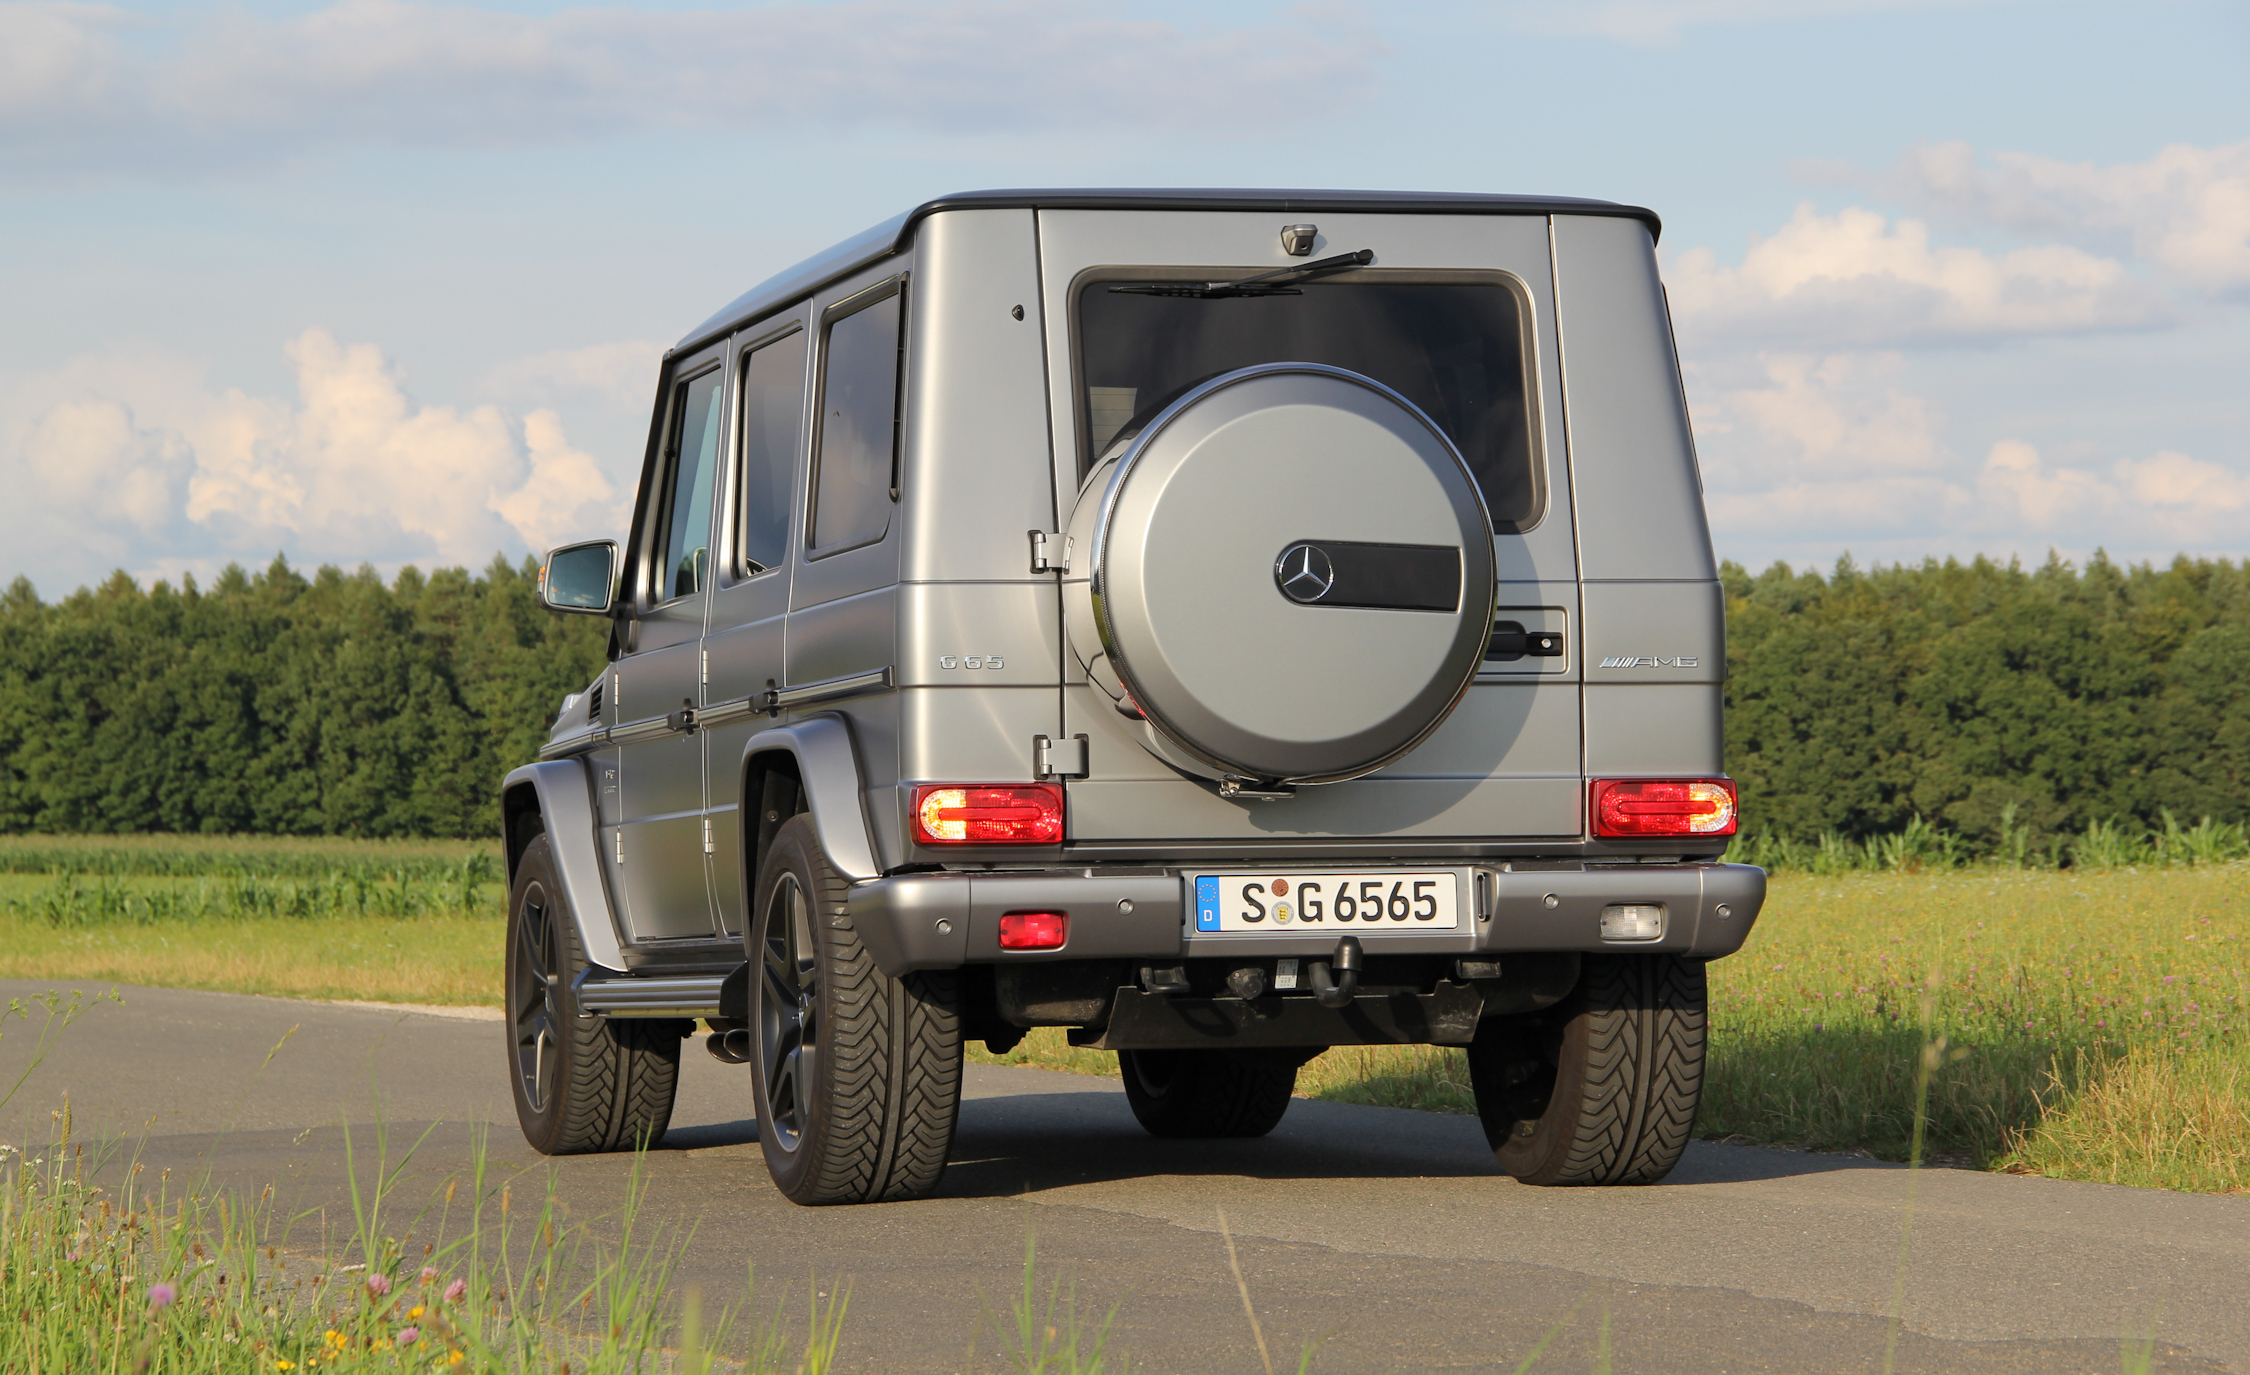 2016 Mercedes Benz G65 AMG (Photo 12 of 15)